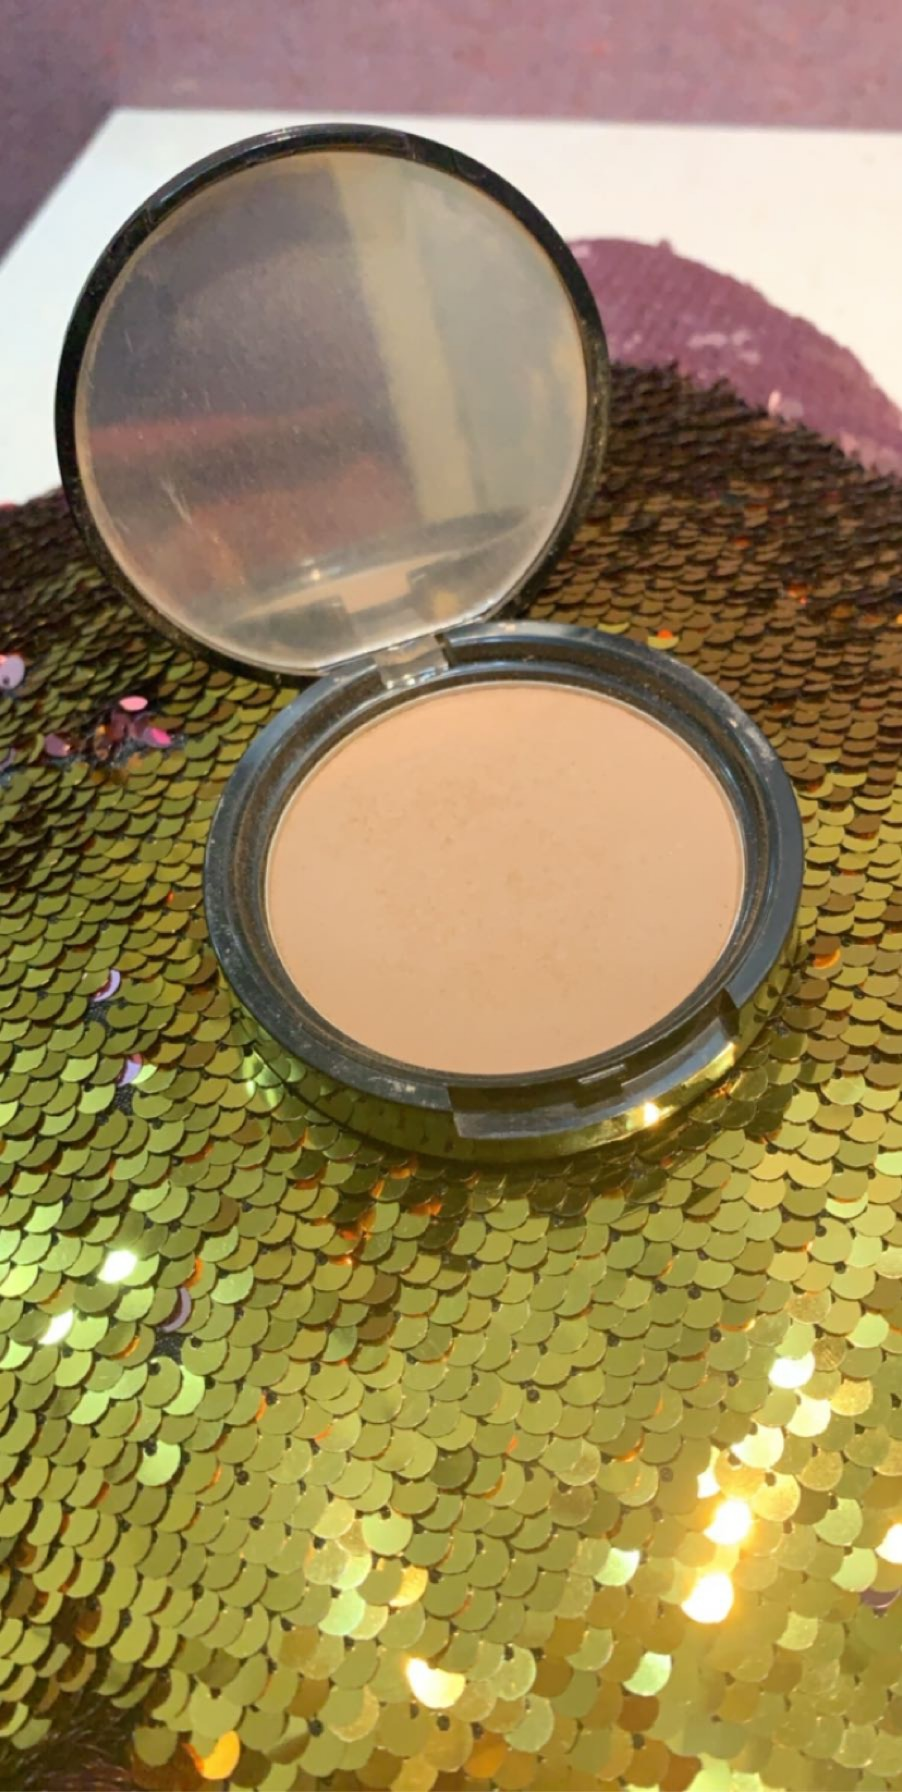 NYX Matte Bronzer pic 2-Perfect matte bronzer-By harshi_shahu